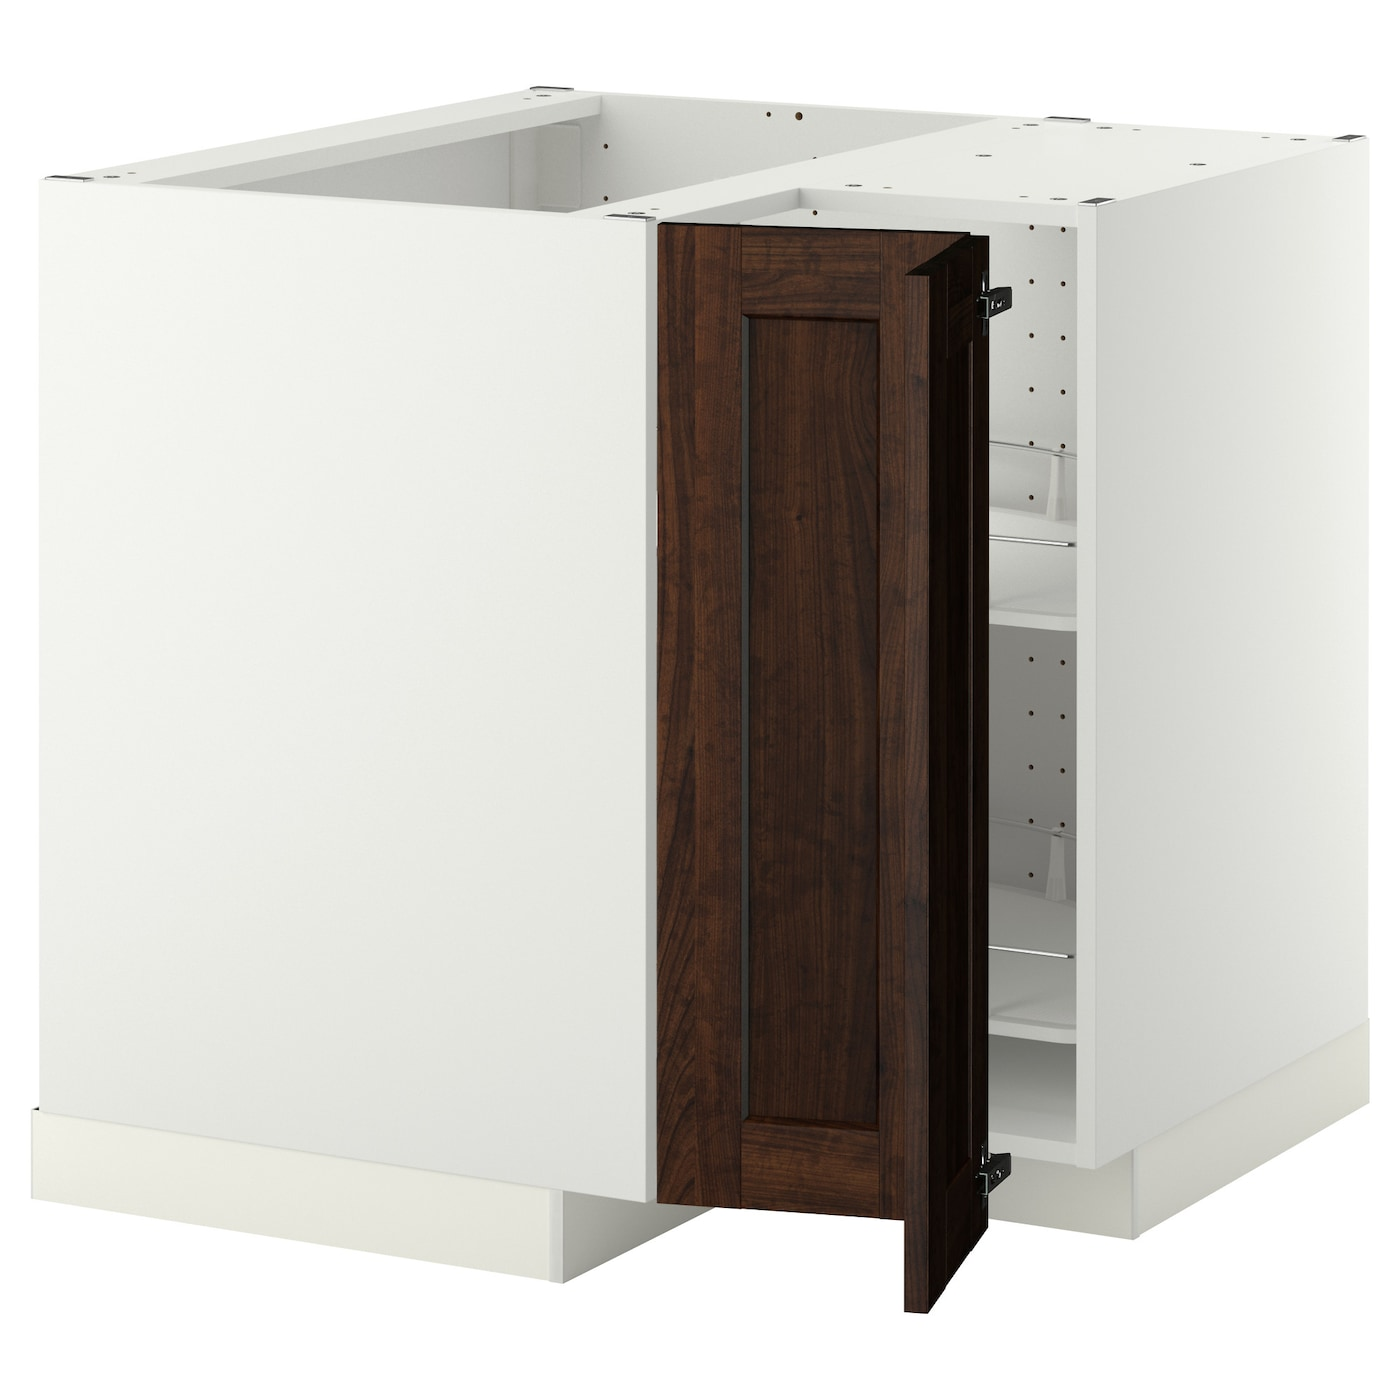 metod corner base cabinet with carousel white edserum brown 88x88 cm ikea. Black Bedroom Furniture Sets. Home Design Ideas